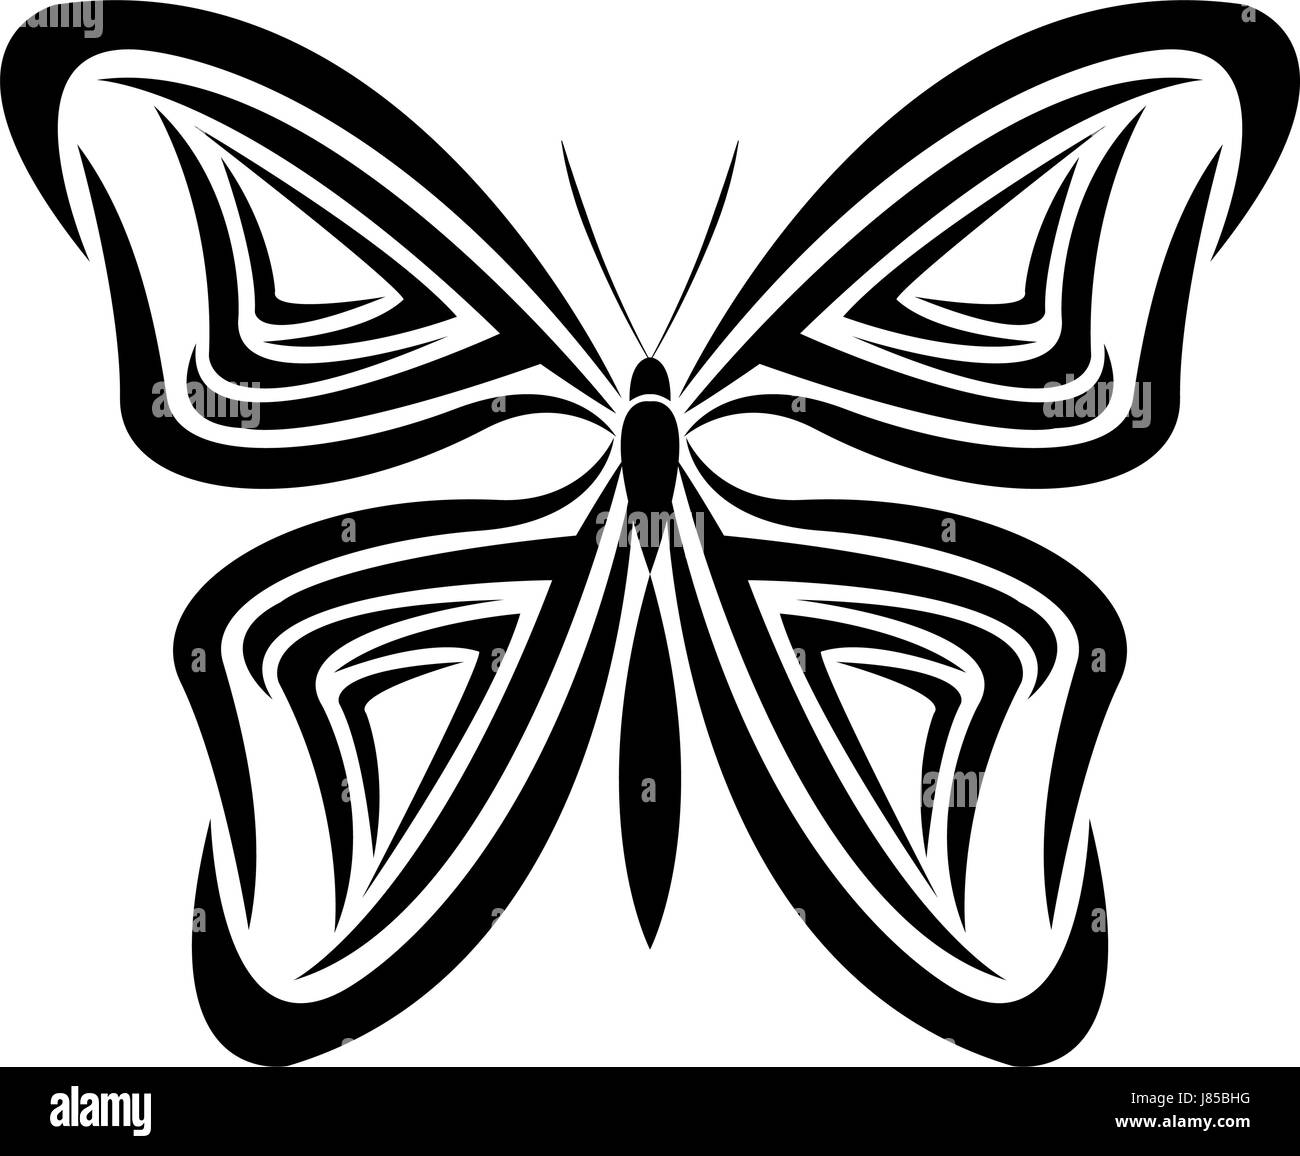 butterfly tribal tatto animal creativity design - Stock Image